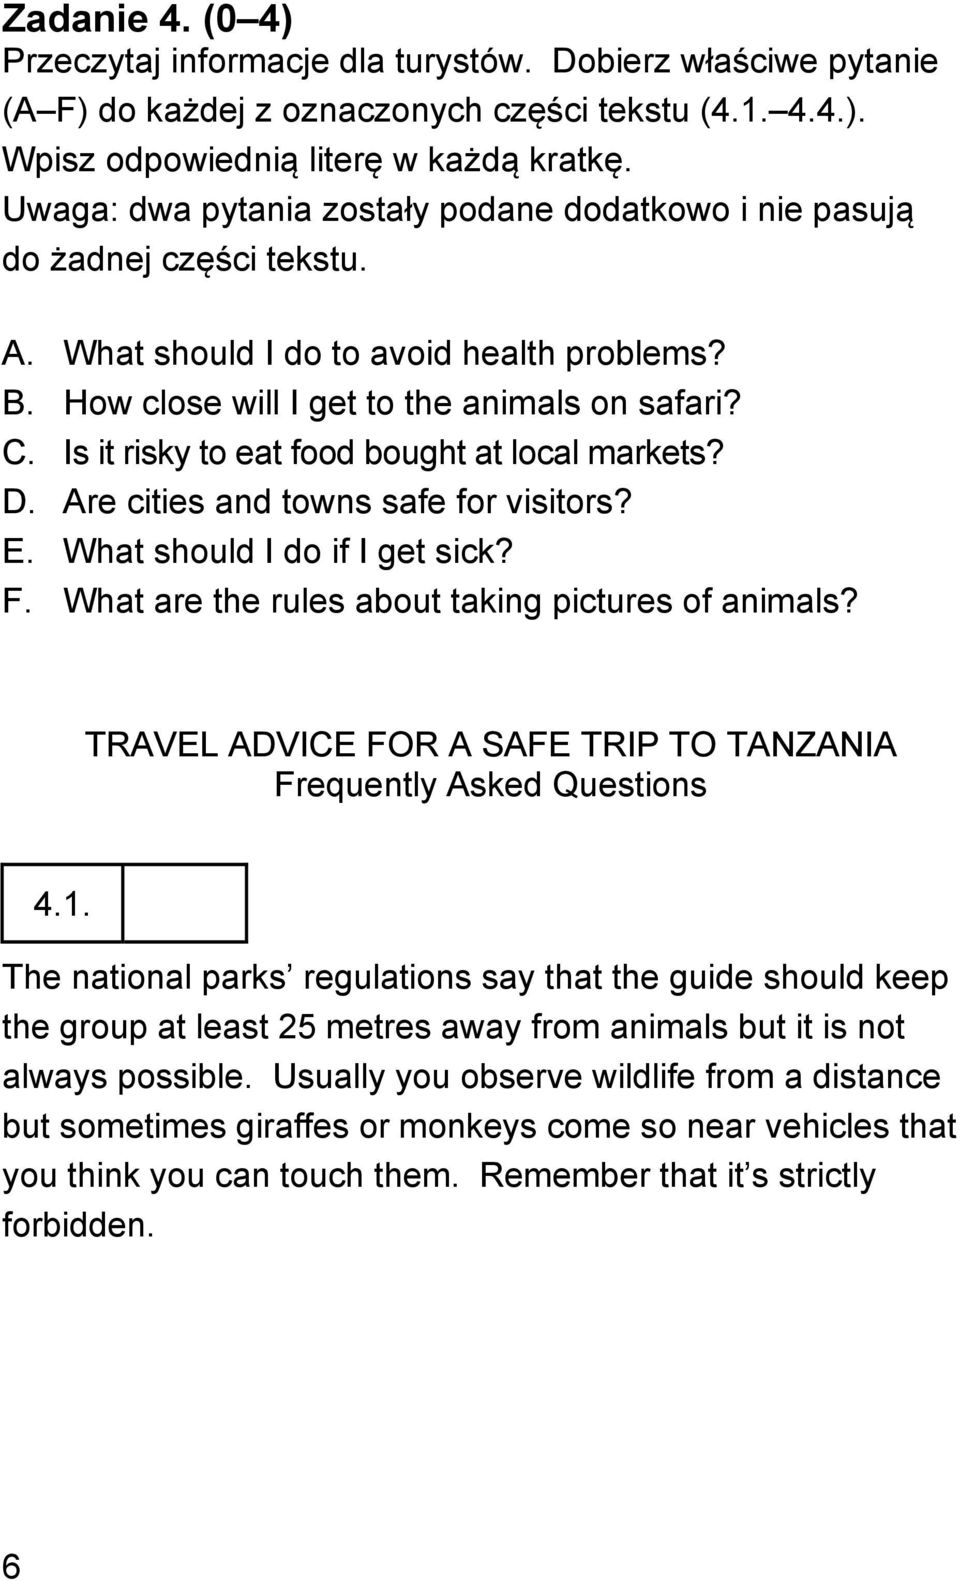 Is it risky to eat food bought at local markets? D. Are cities and towns safe for visitors? E. What should I do if I get sick? F. What are the rules about taking pictures of animals?